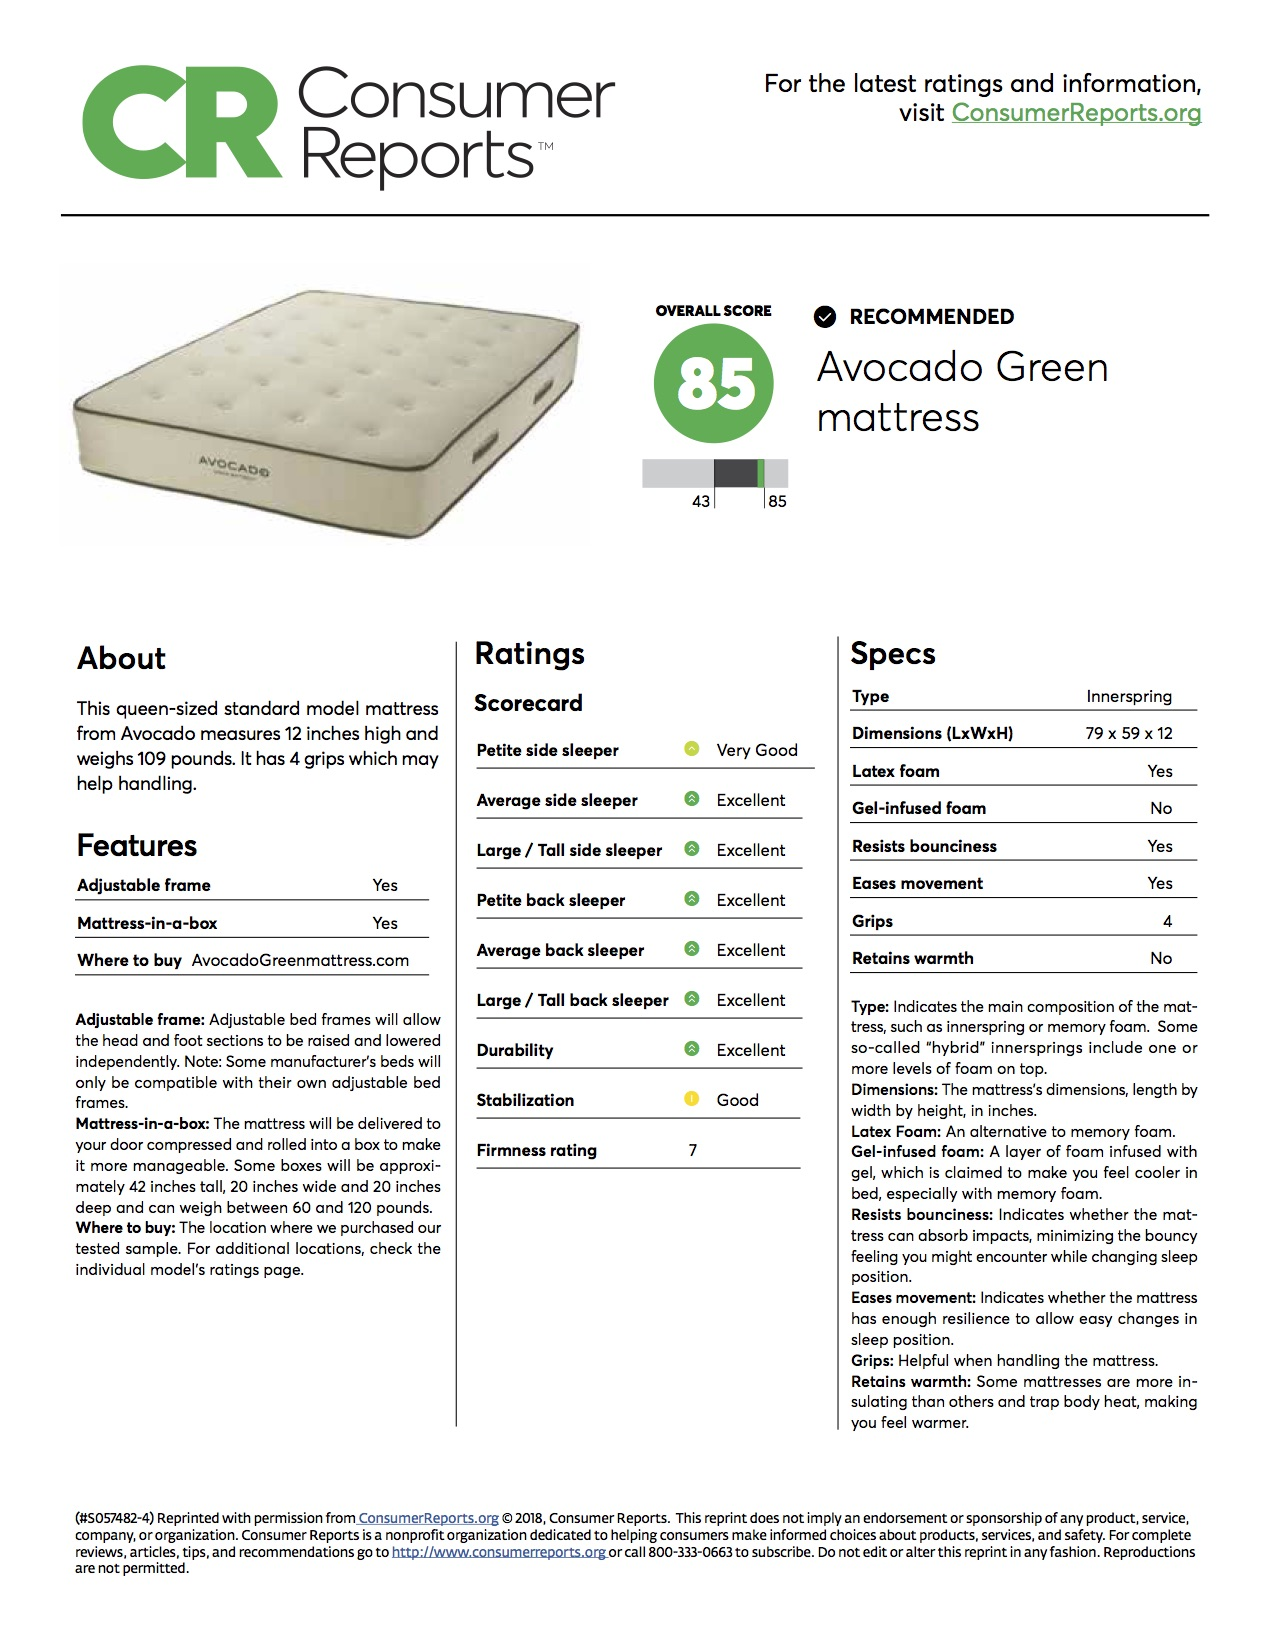 Ratings On Mattresses >> Consumer Reports Mattress Ratings Avocado Green Mattress